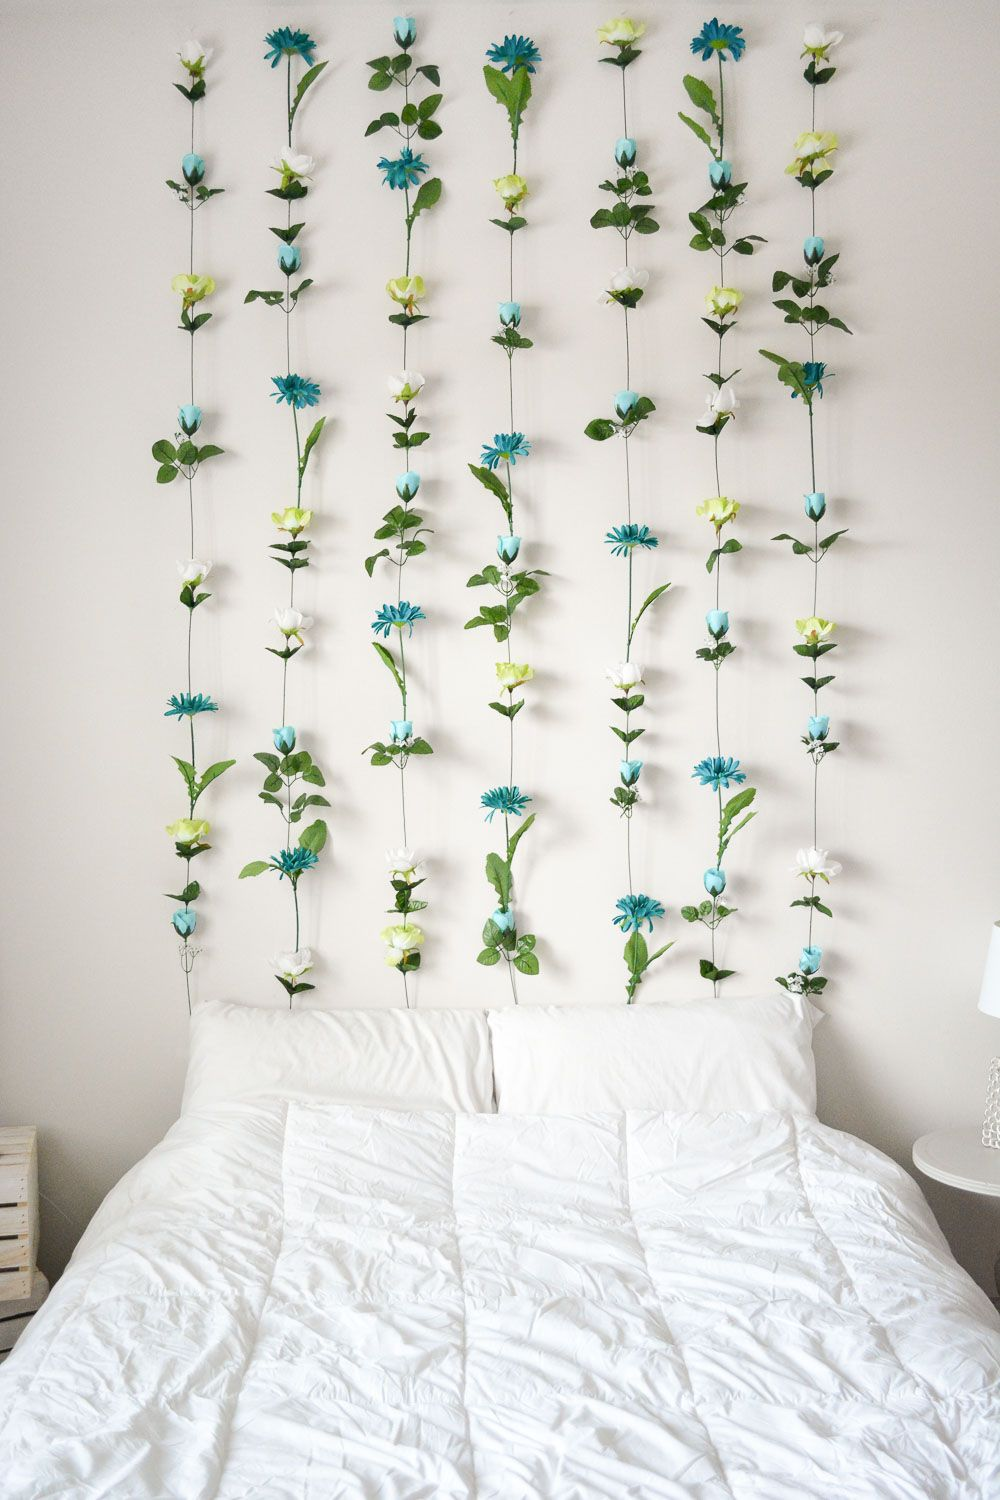 Exceptional 10 Idiot Proof Ways To DIY Your Wall Decor